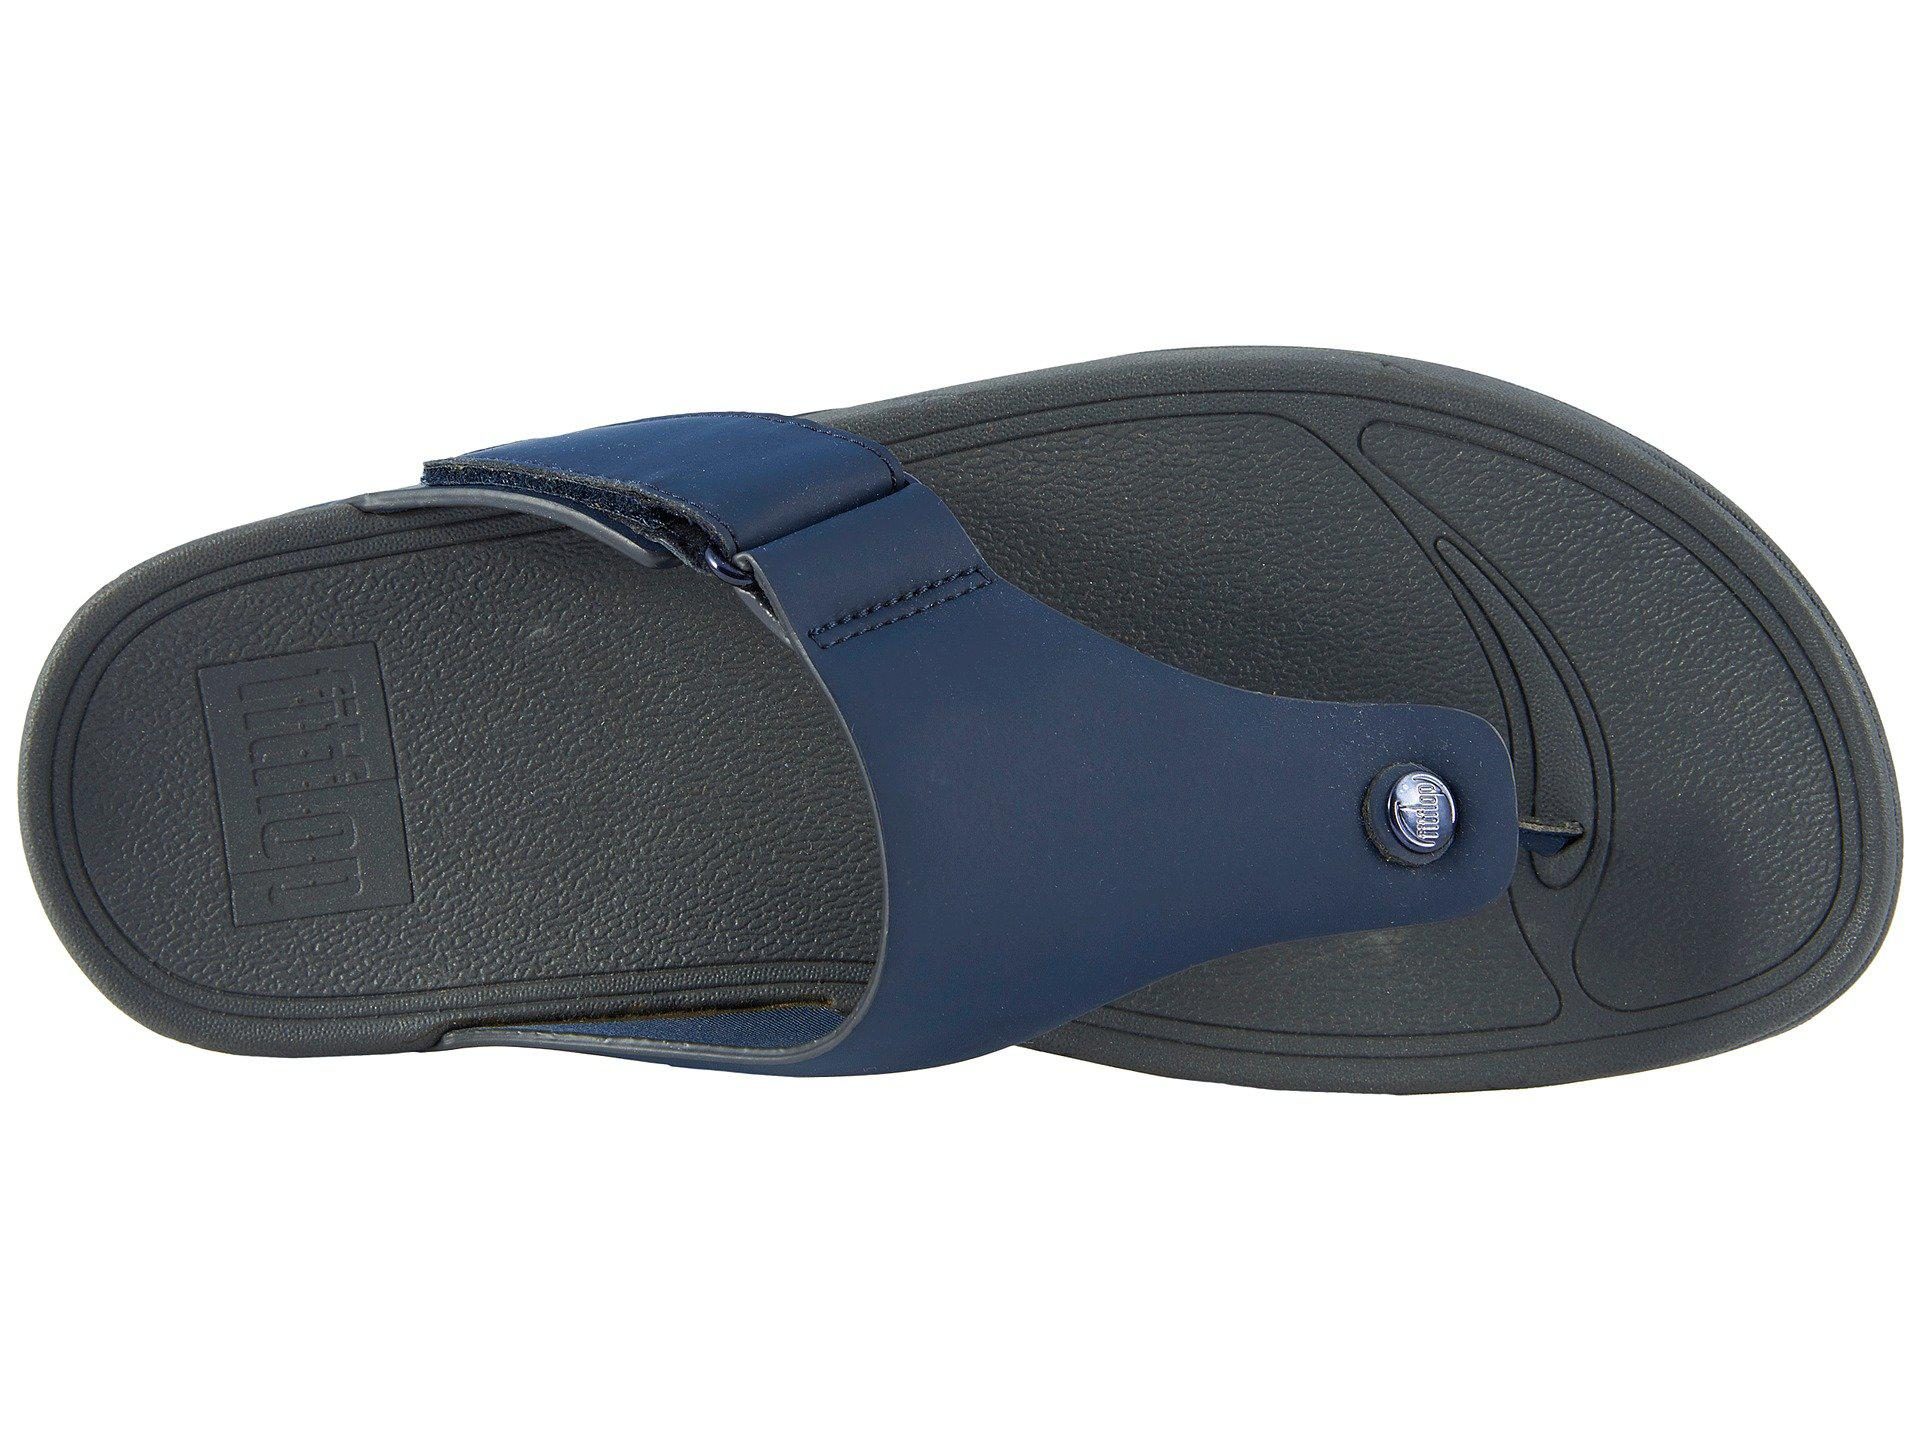 7d86a7b1a7fa Fitflop - Blue Trakk Ii (midnight Navy) Men s Sandals for Men - Lyst. View  fullscreen